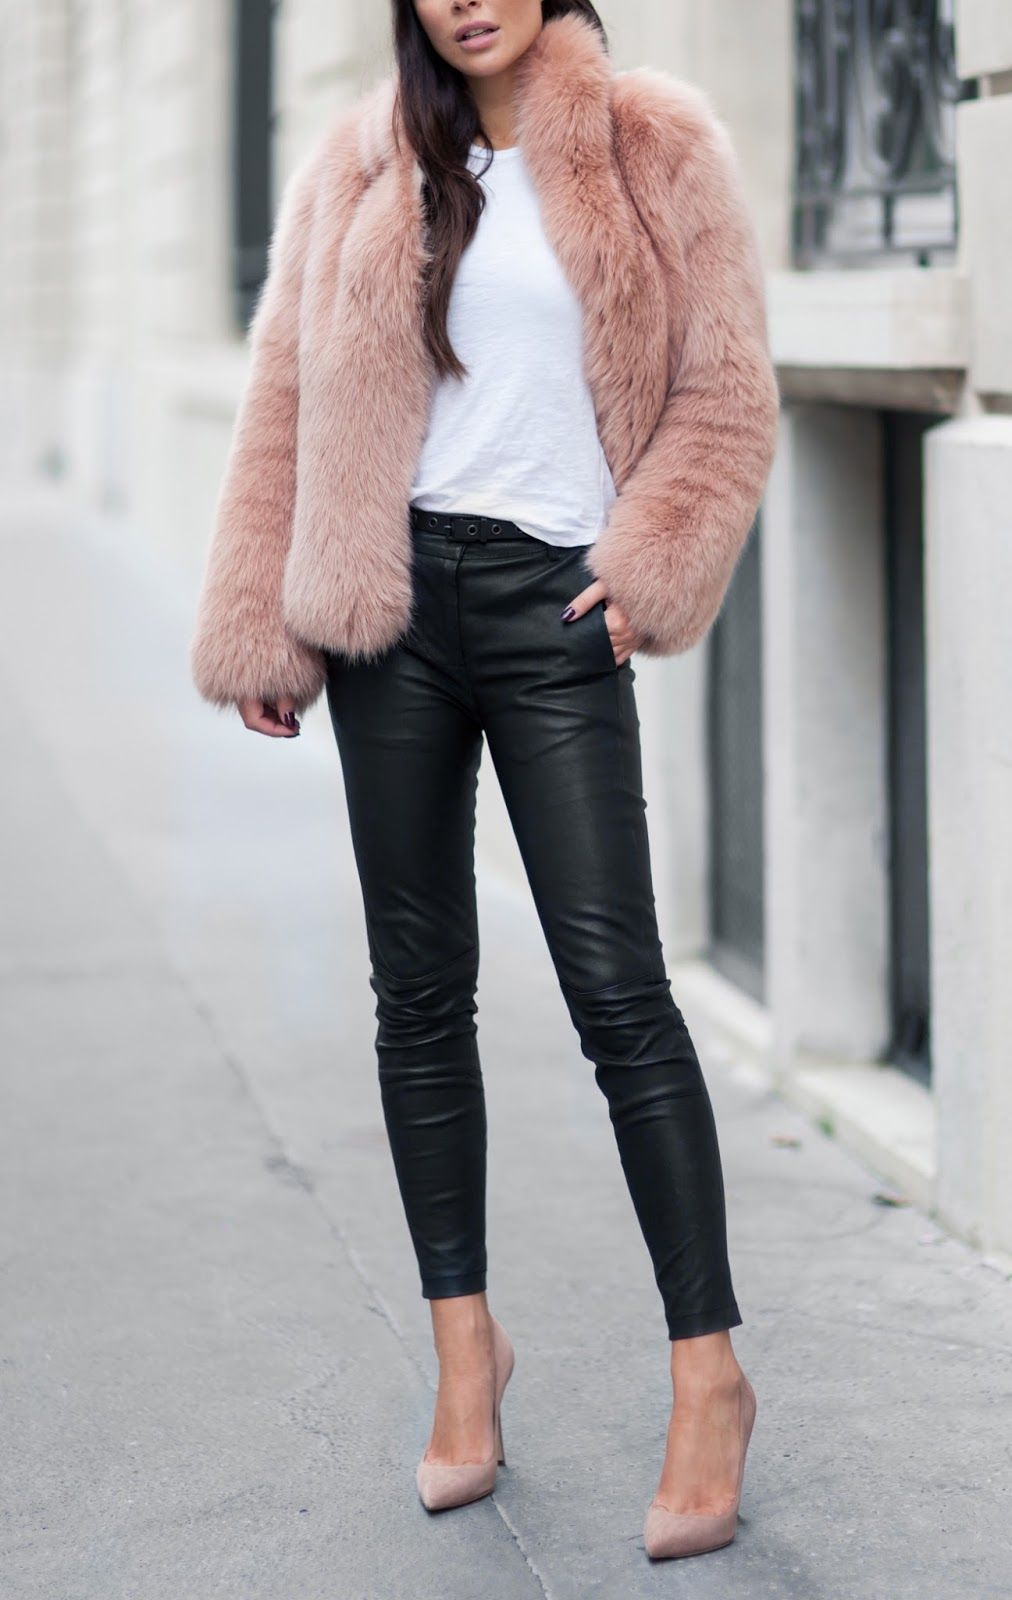 Blush faux fur coat, blush heels, black leather pants, white tee